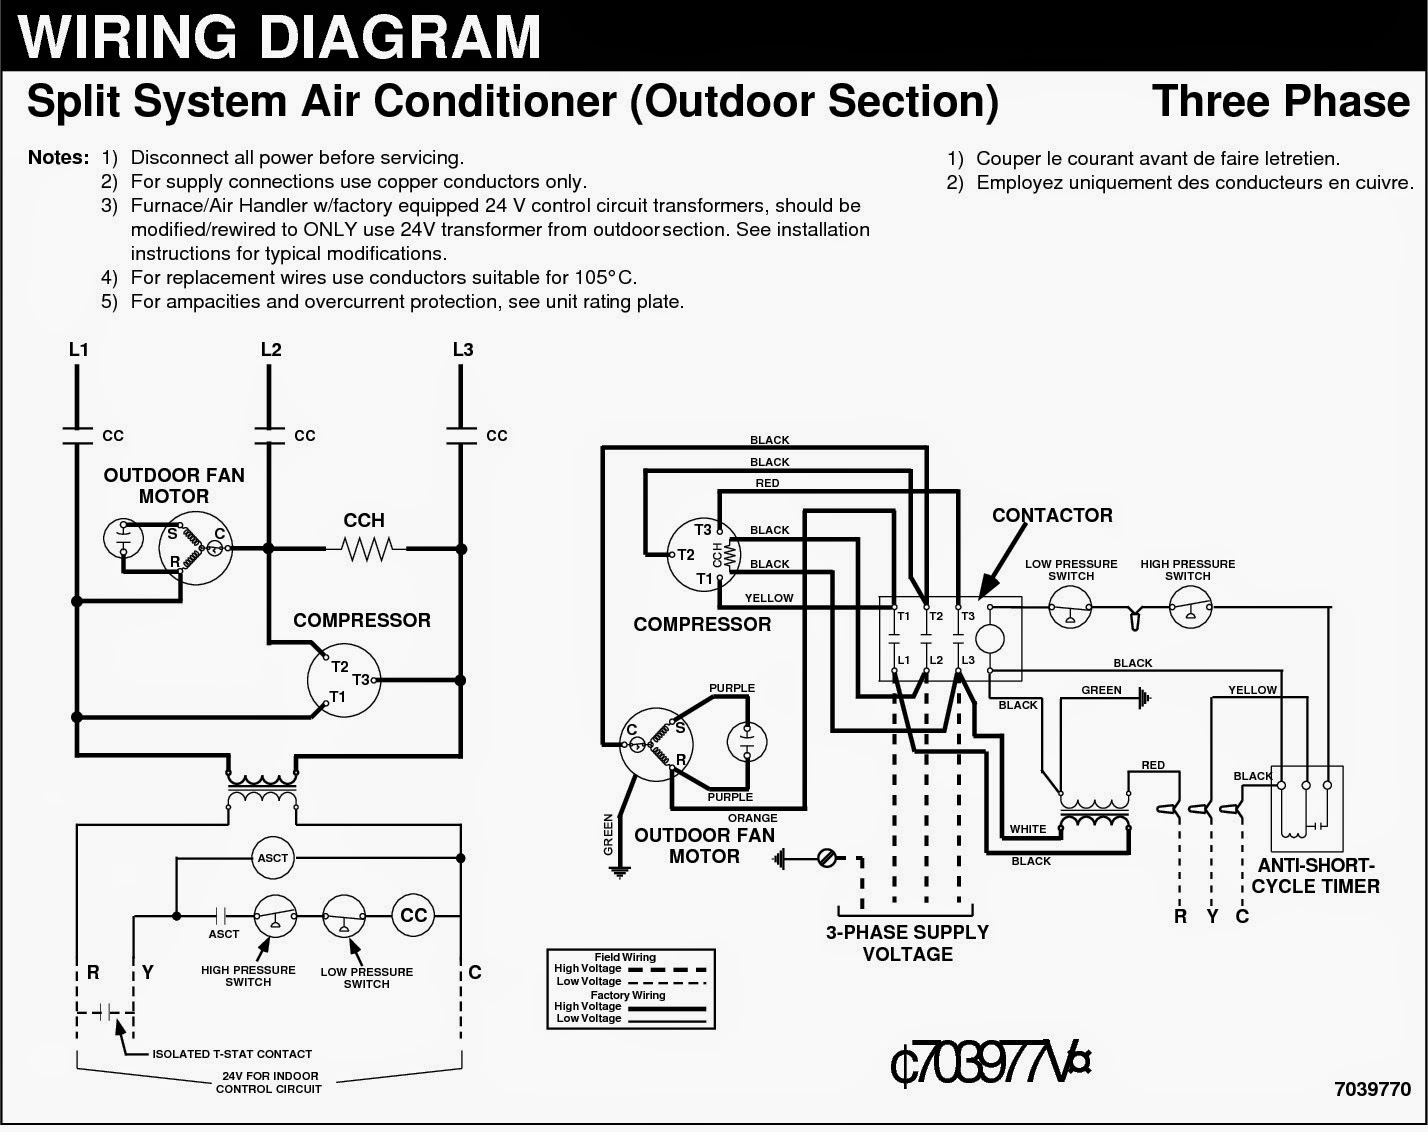 typical air conditioner wiring diagrams find wiring diagram u2022 rh empcom co Trinary Switch Wiring Diagram Trinary Switch Wiring Diagram